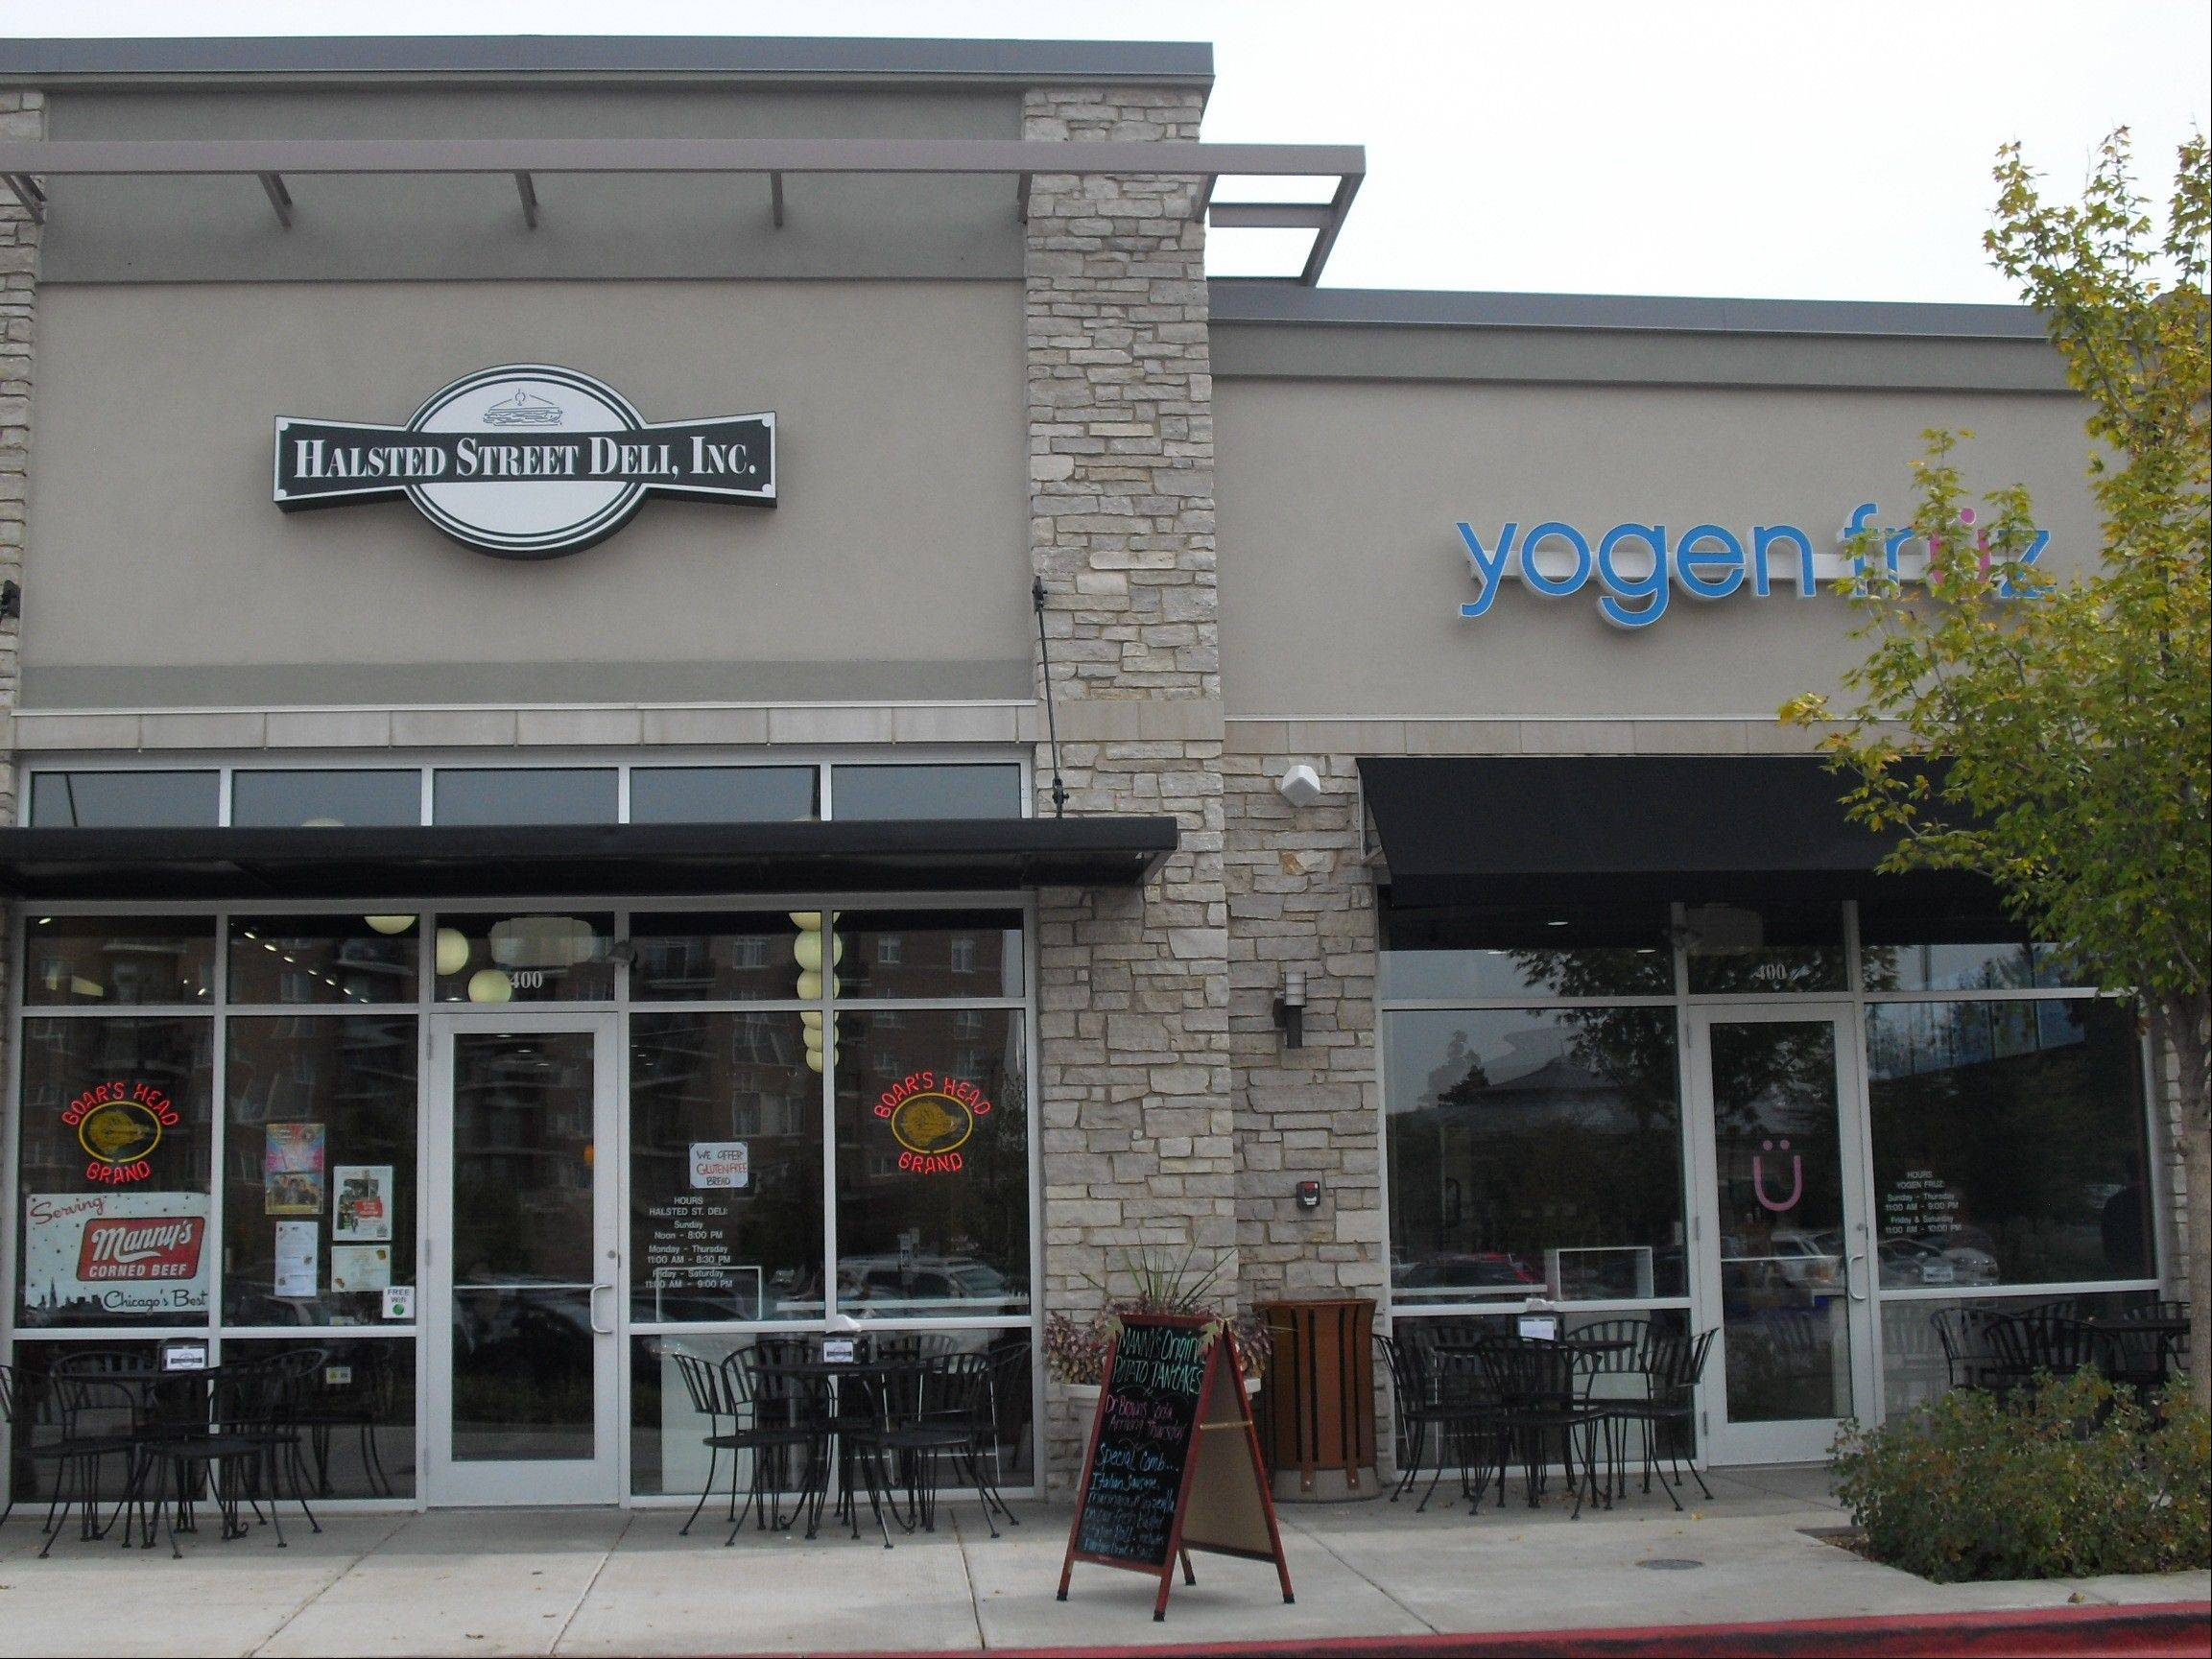 Halsted Street Deli / Yogen Fruz recently opened in Vernon Hills. The owners are attempting to bring the feel of an authentic Chicago deli to Lake County.